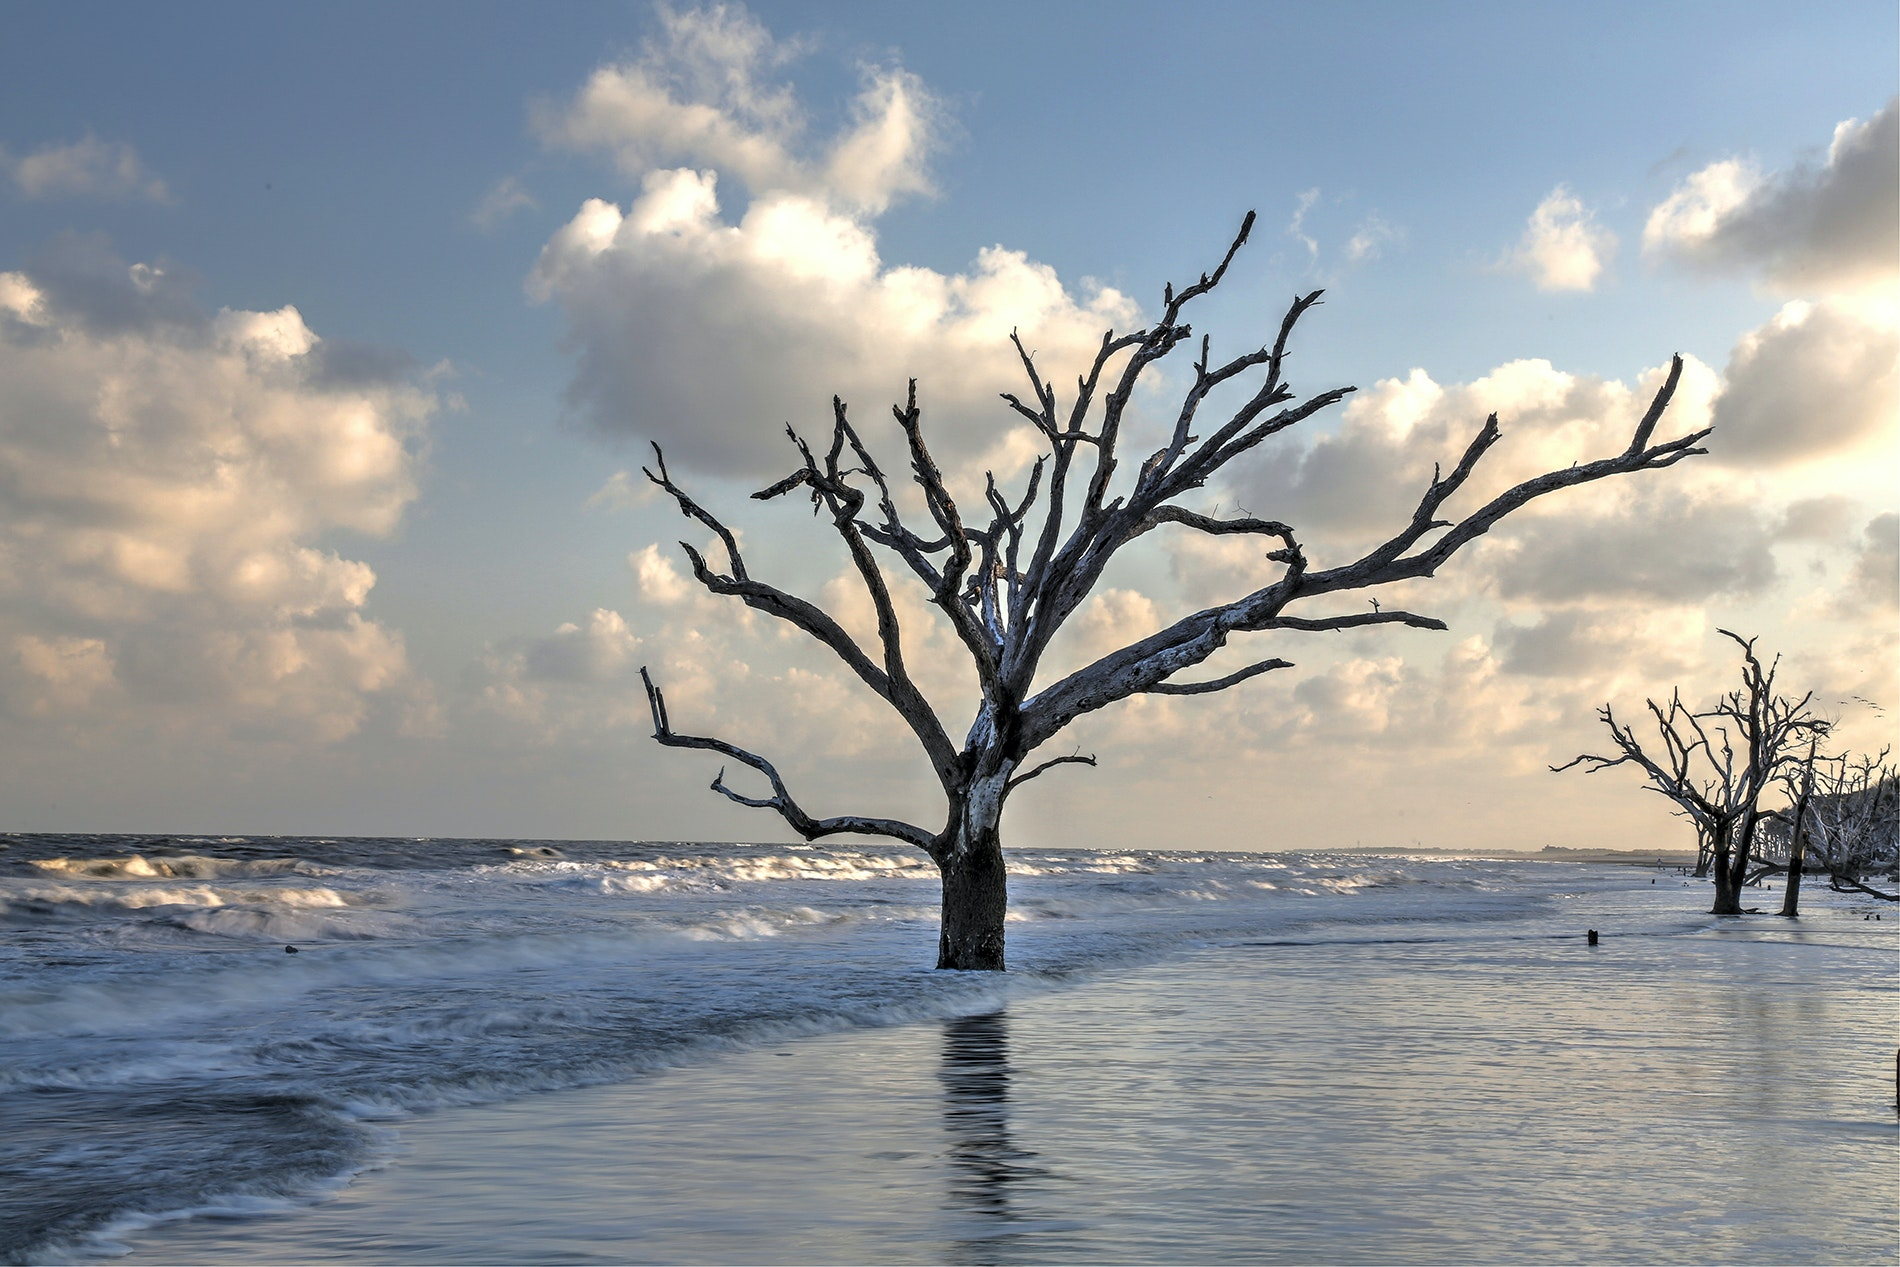 A walk along these eerily beautiful beaches reveals the encroaching ocean tides.